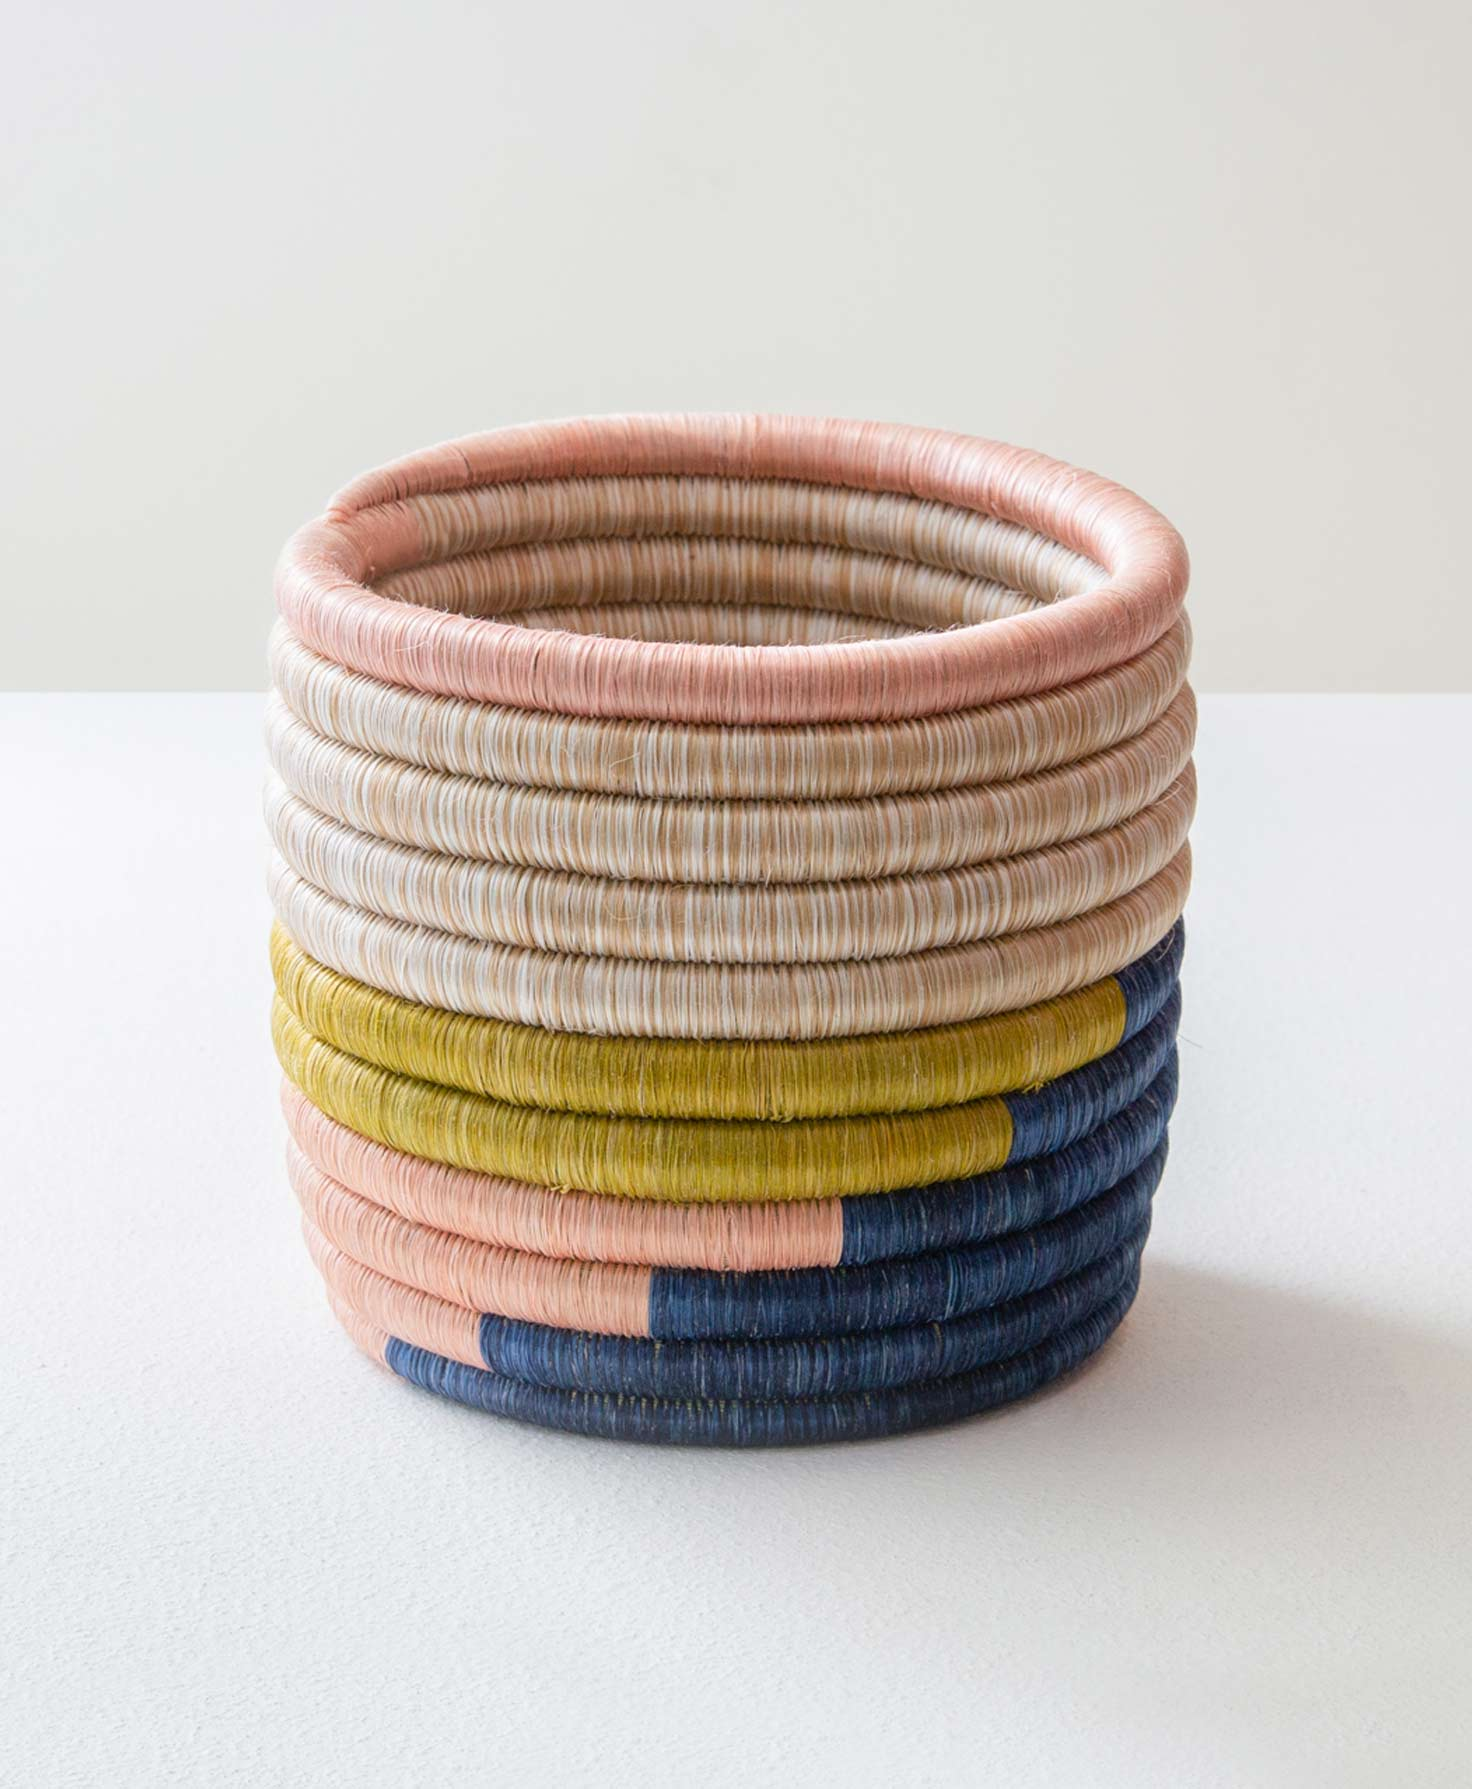 The Sisal Plant Holder sits on a white surface. It is shaped like a cylinder with a flat, round base. The walls of the plant holder are made of a long, coiled tube that is wrapped in sisal grass. On the bottom half of the holder the grass is dyed navy, pink and mustard to create a color blocked look. The grass on the top half of the holder is a tan color, and the grass around the rim is pink.